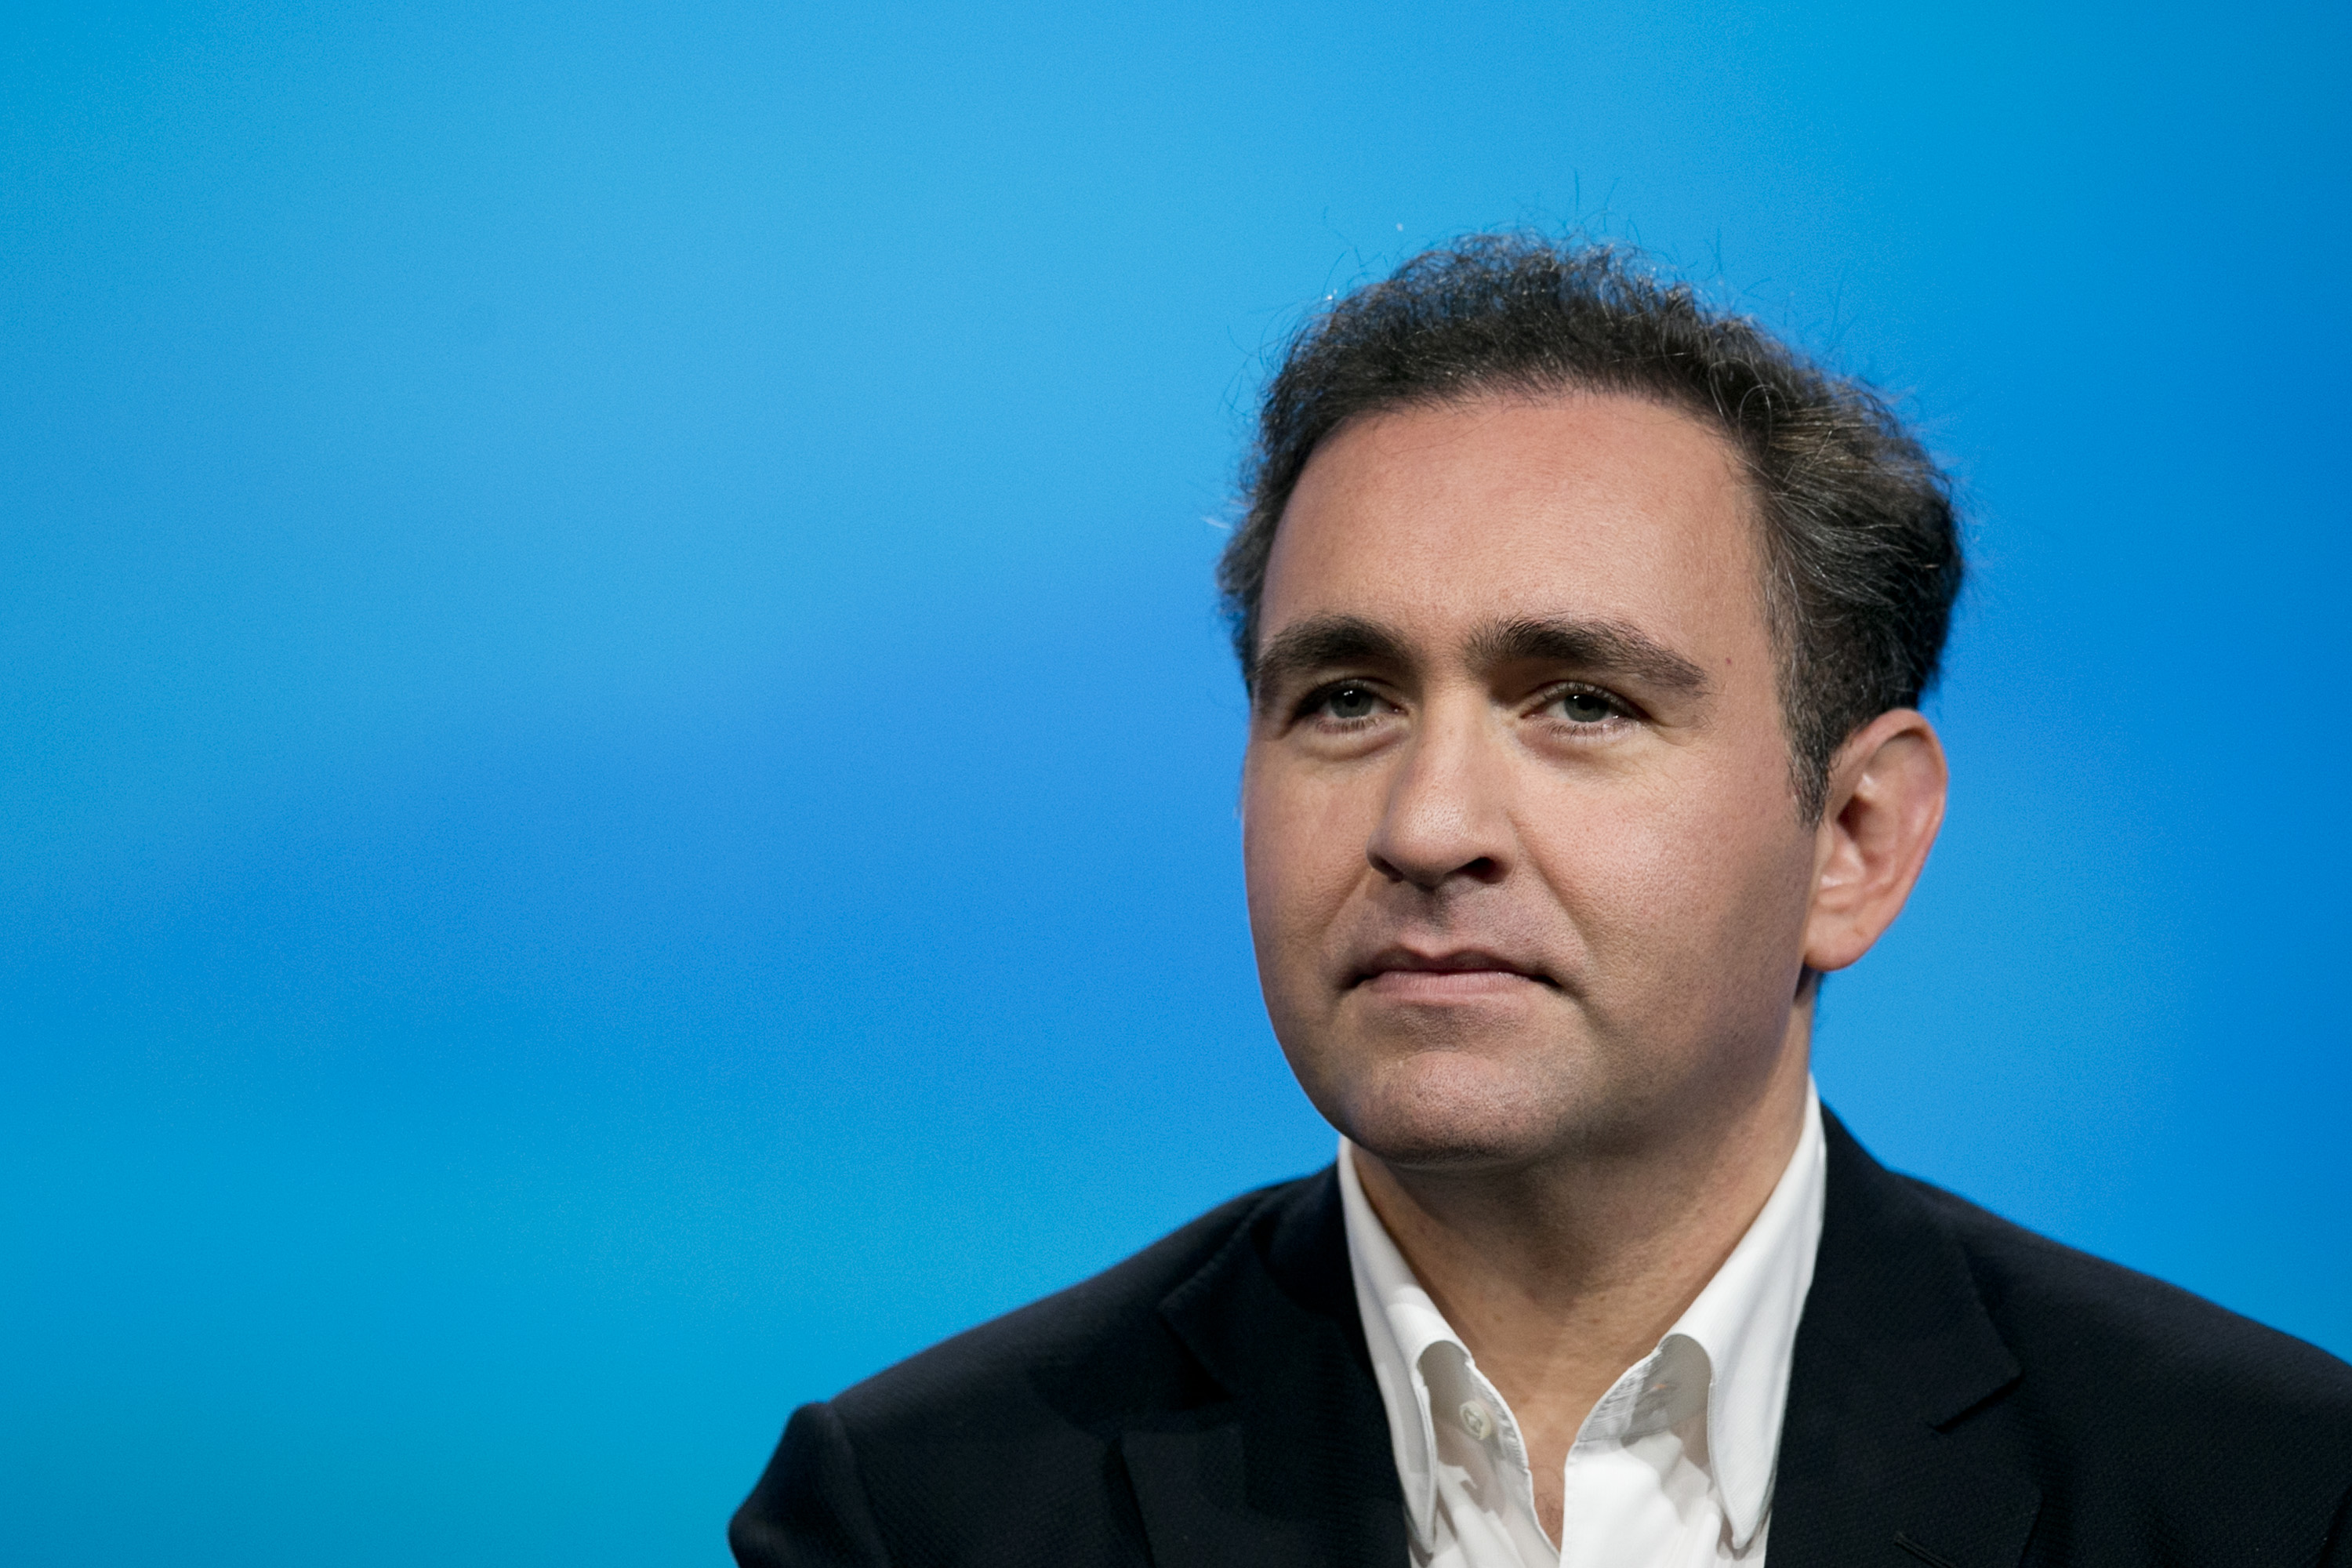 Ali Rowghani, chief operating officer of Twitter Inc., listens during a panel discussion at the National Cable and Telecommunications Association Cable Show in Washington on June 10, 2013.